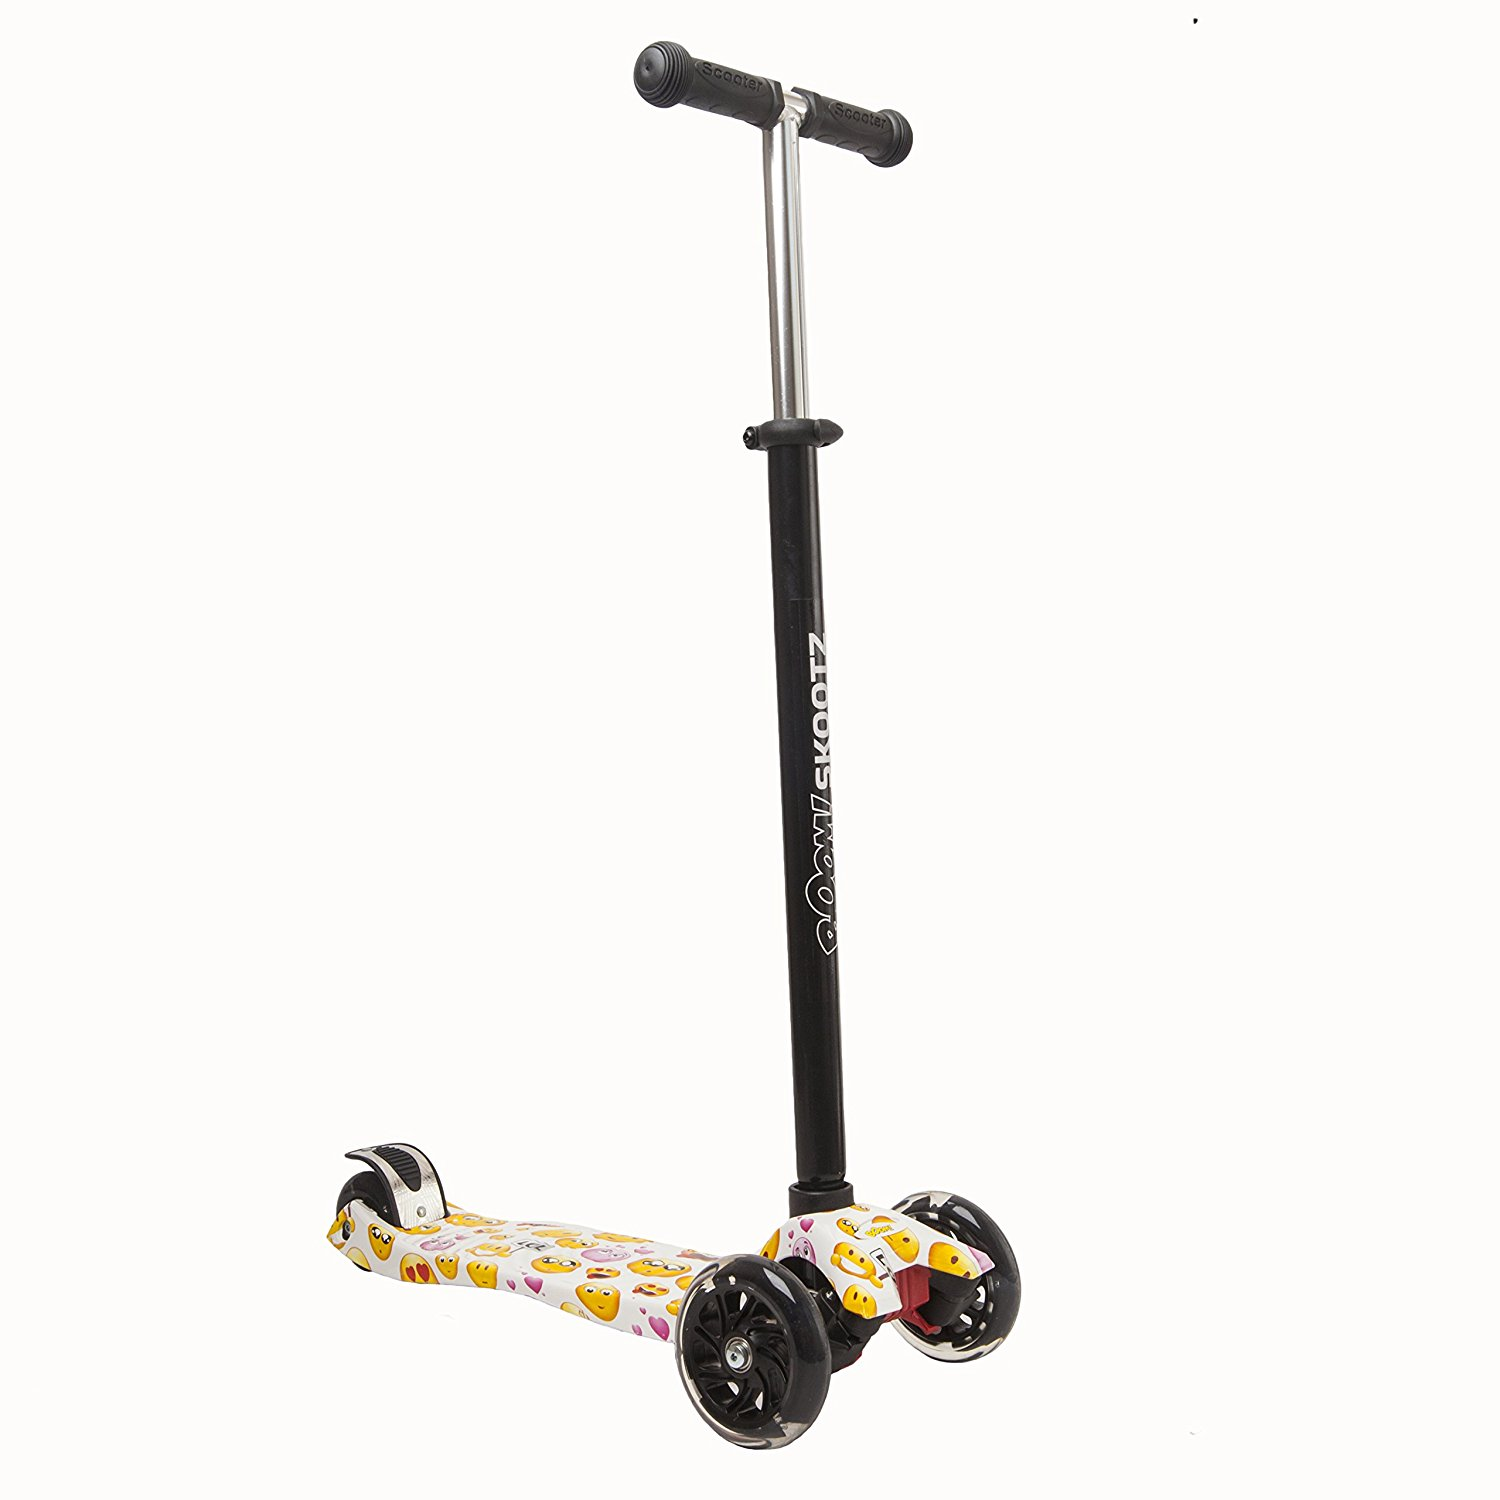 Deluxe 3 Wheel Maxi Scooter Review